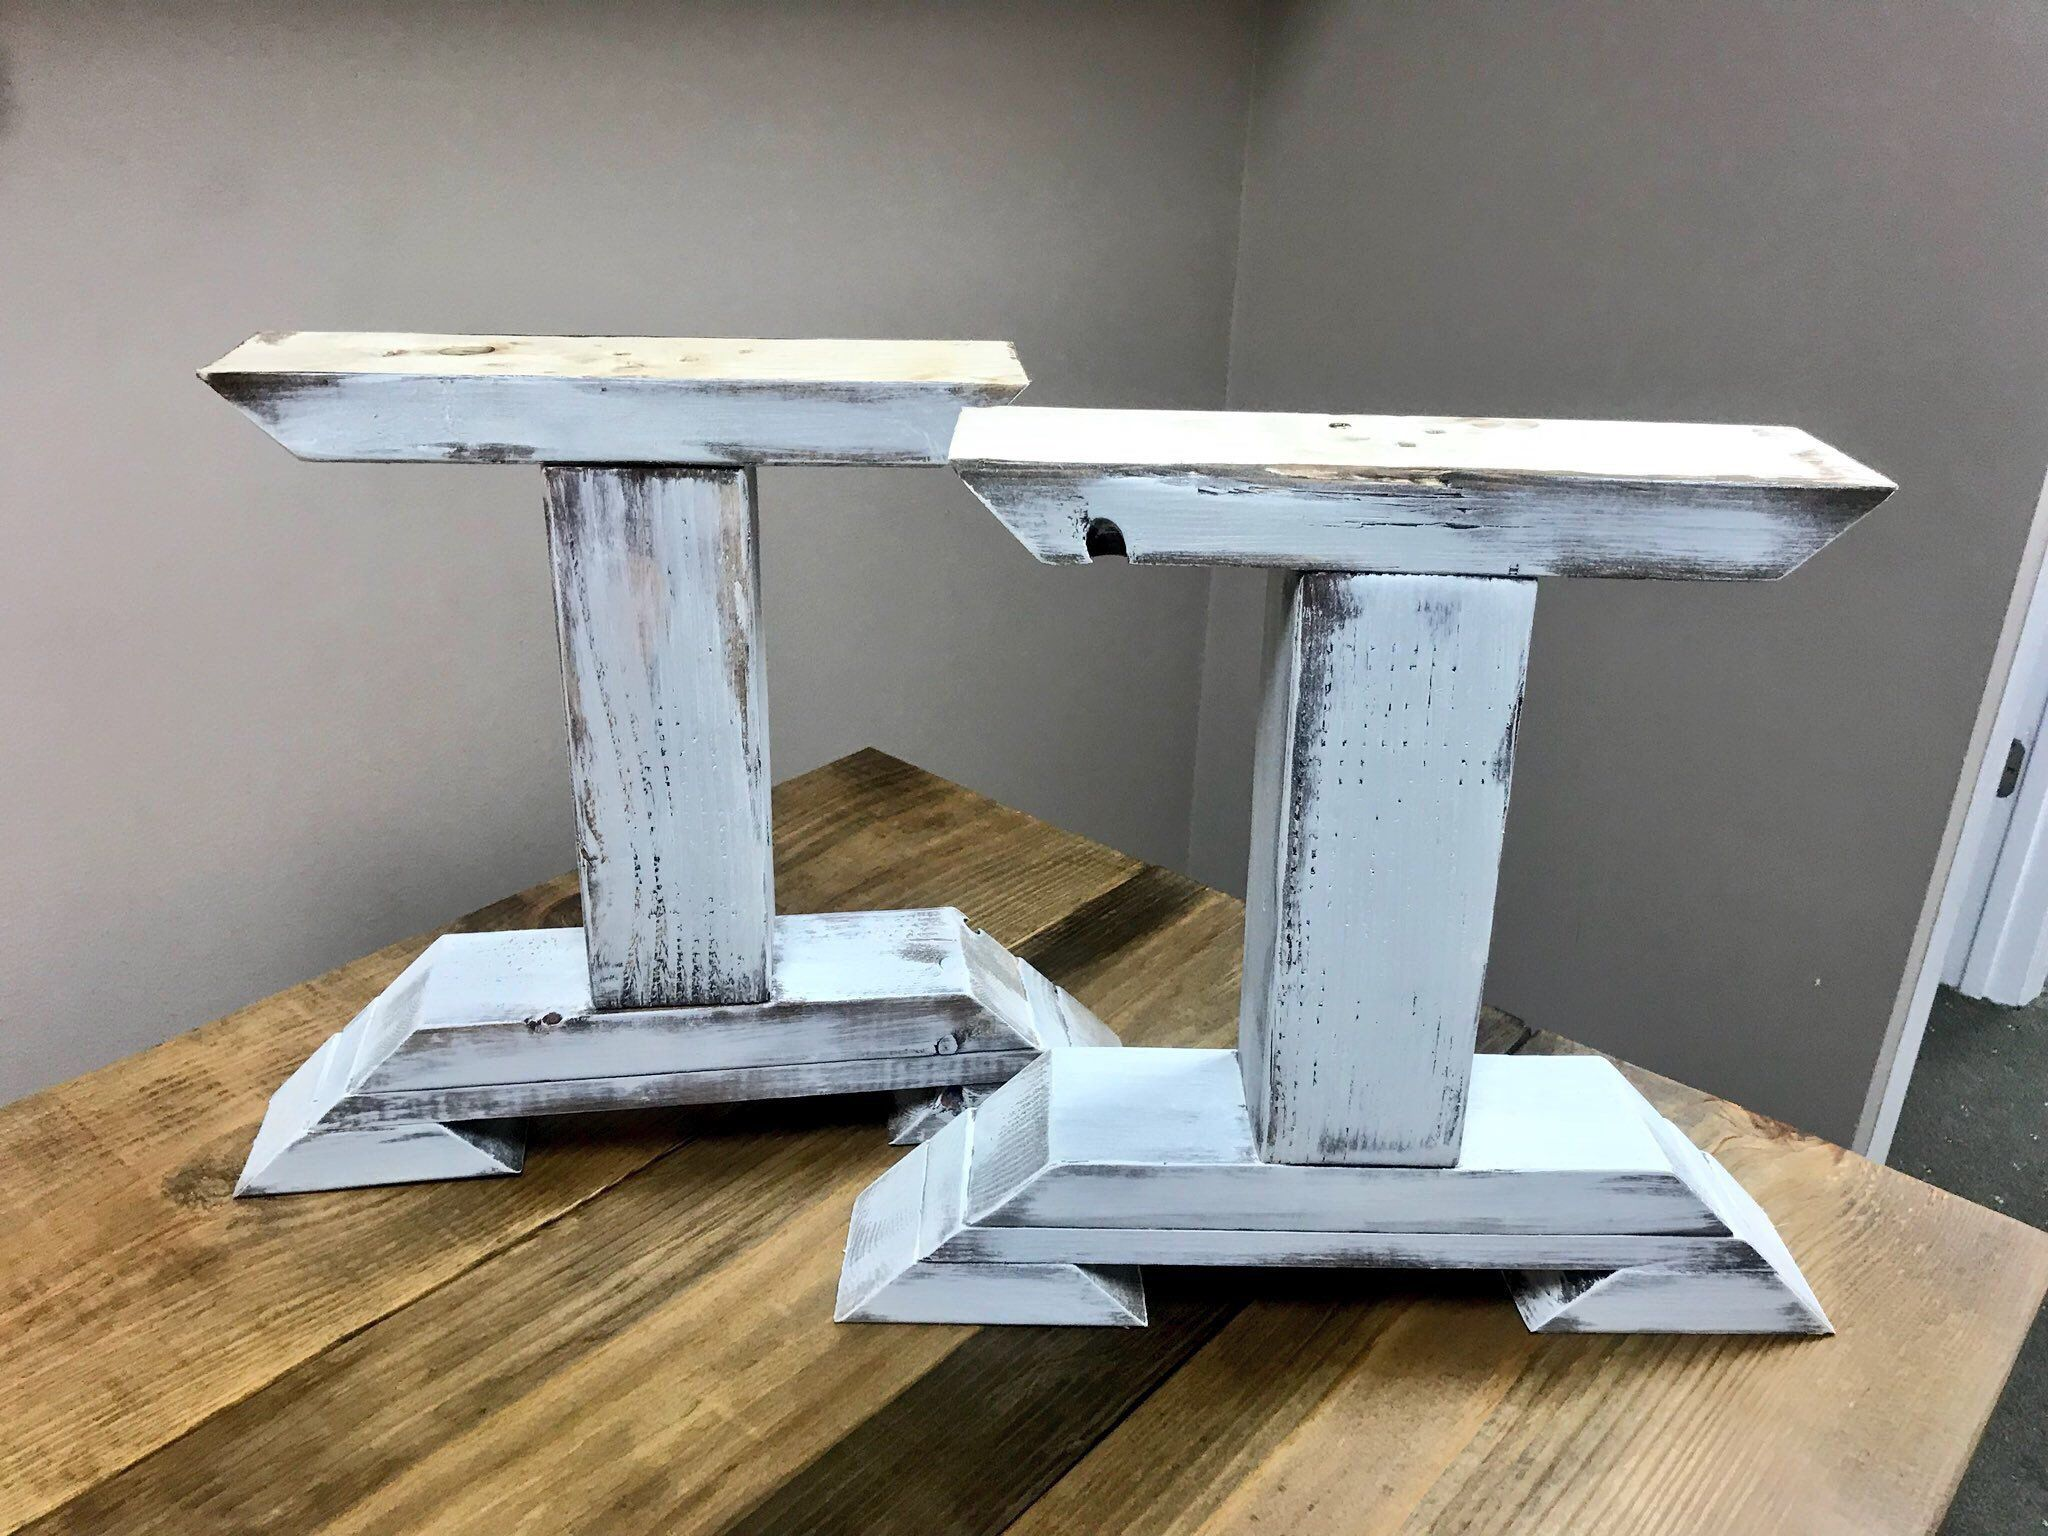 Diy Bench Leg Set Antique White Distressed Trestle Style Etsy Diy Table Legs Farmhouse Table Legs Wood Table Legs